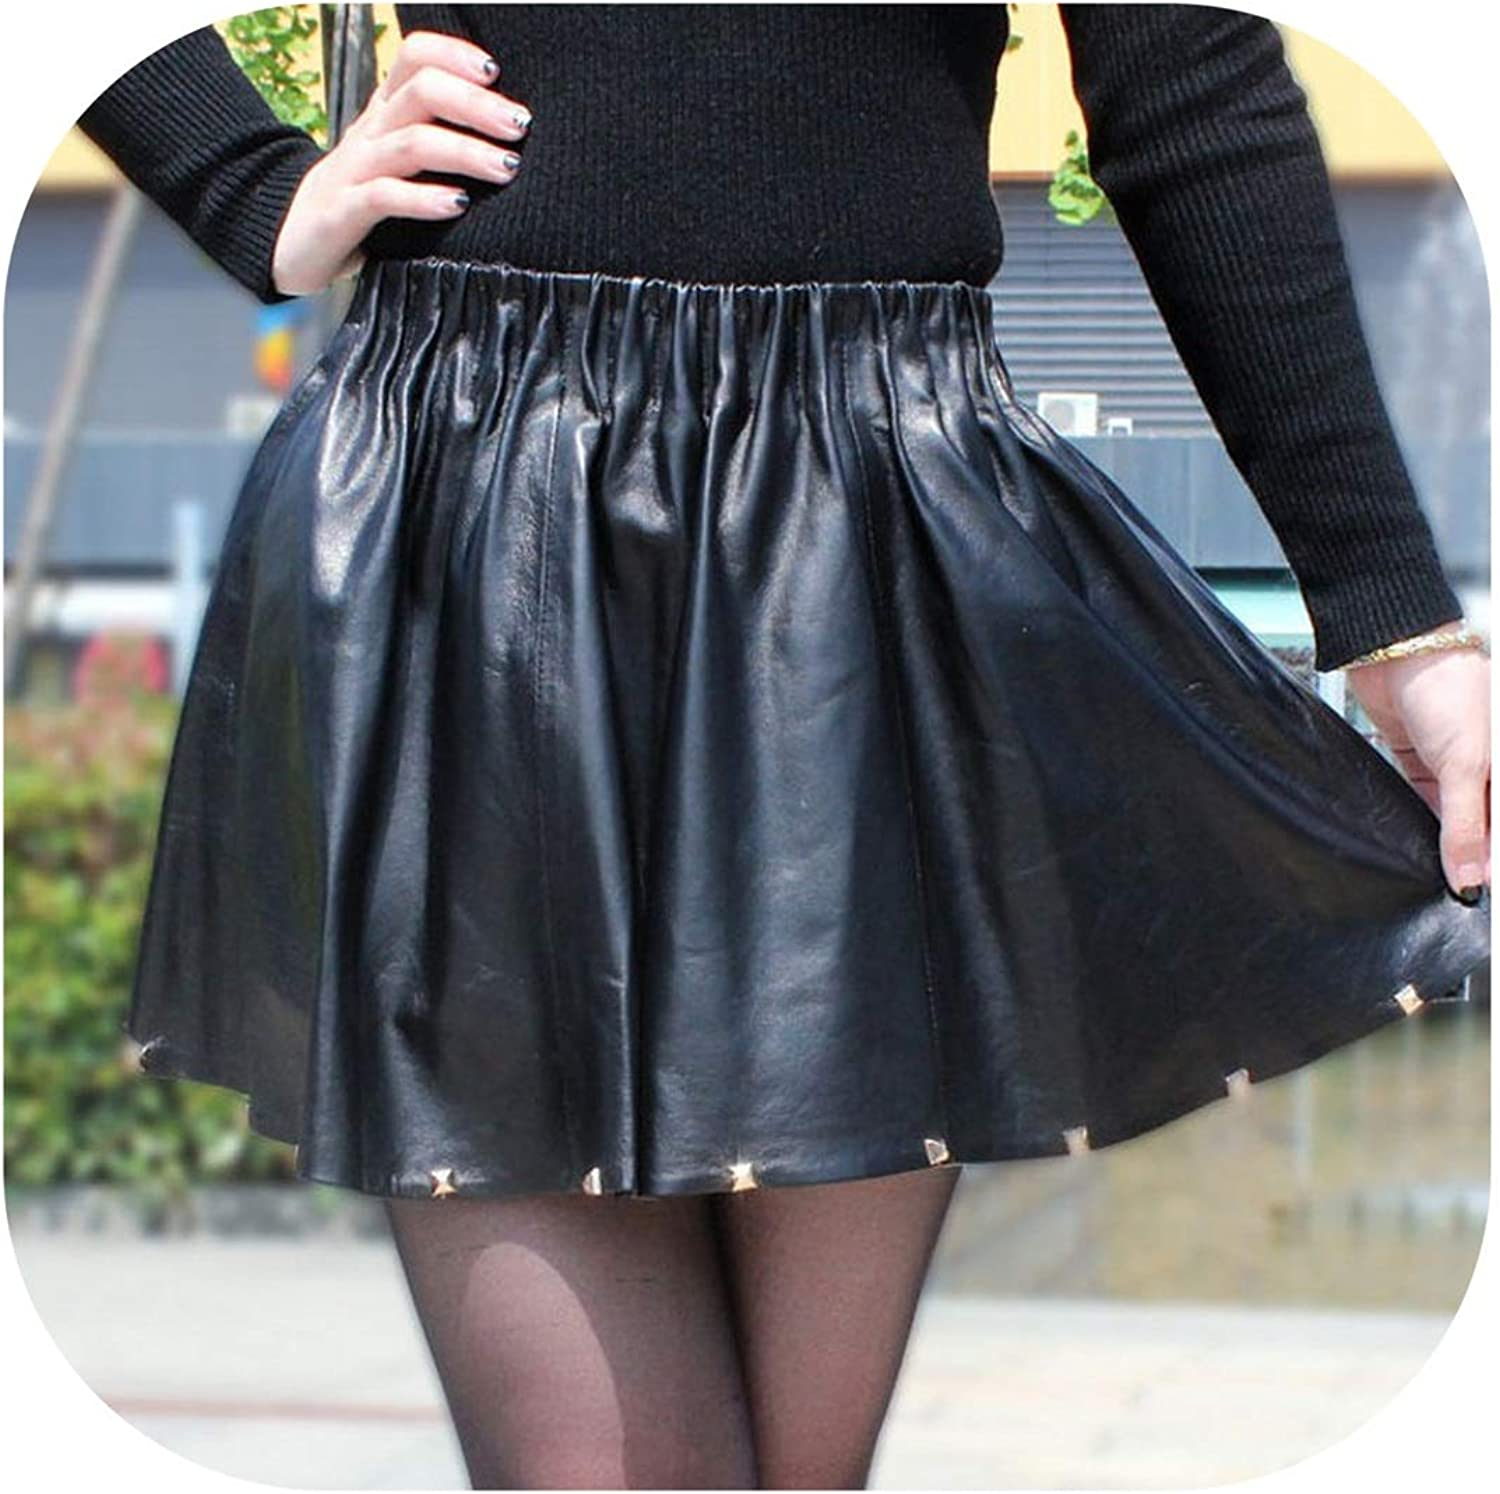 Try My Best dress Women Luxury Genuine Leather Pleated Skirt Elastic High Waist Sexy Club Party Mini Short Skirts